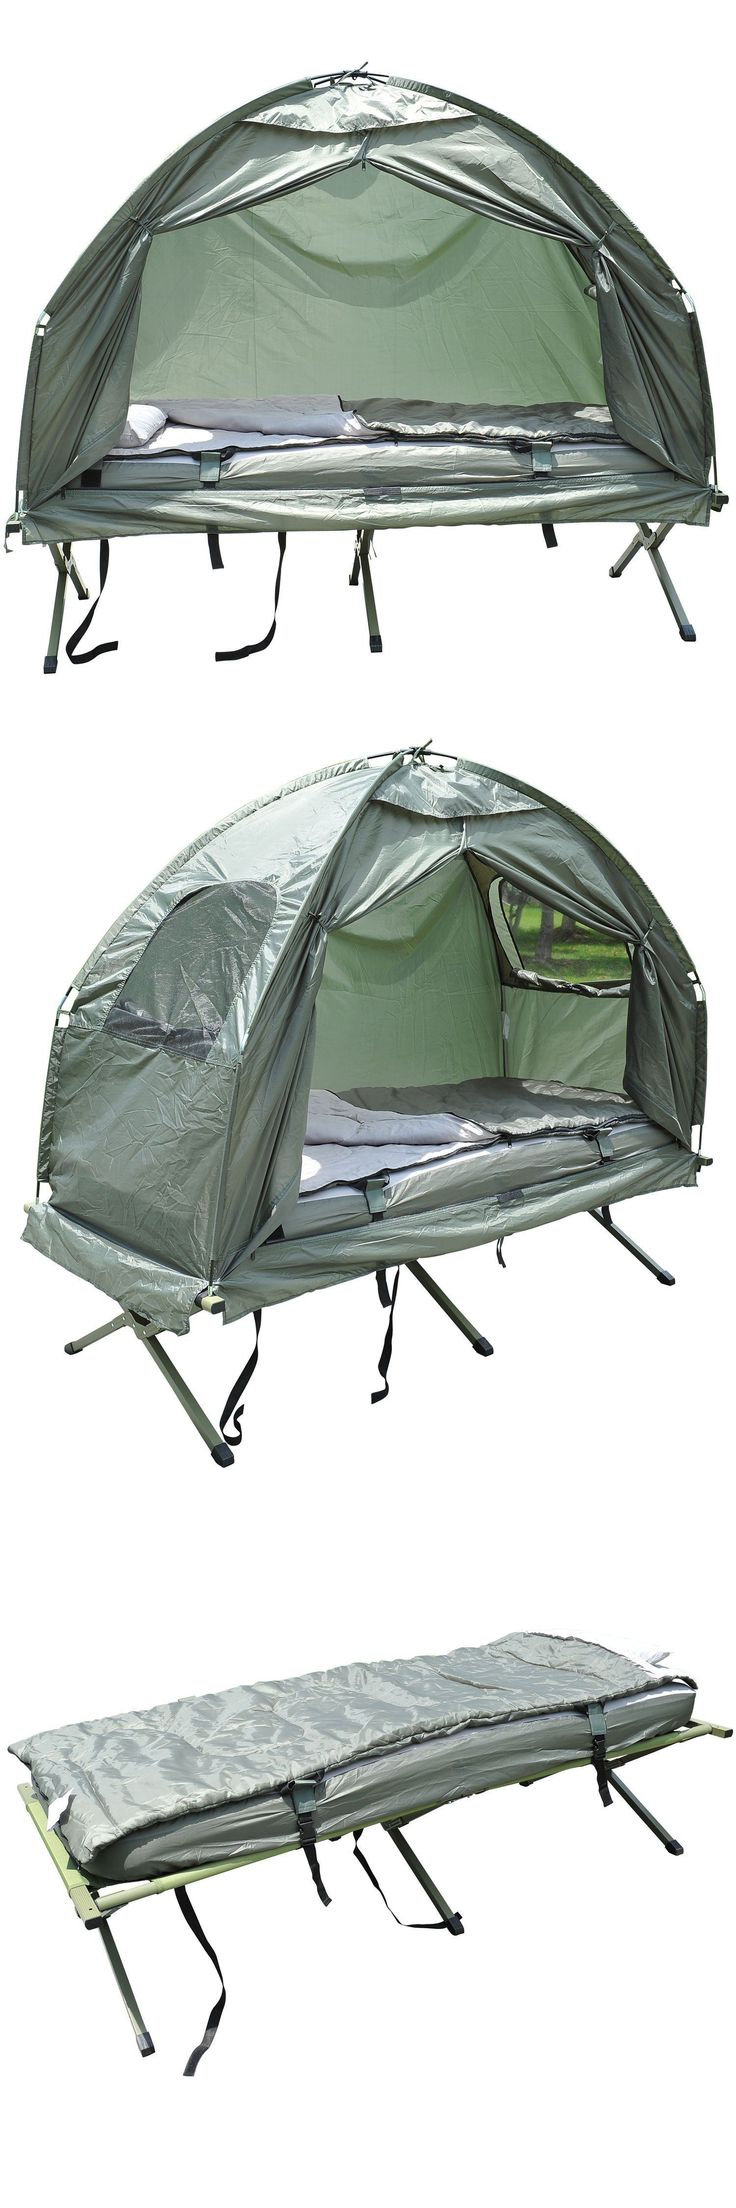 Other Camping Sleeping Gear 16040: Portable Tent Pop Up Camping Cot Outdoor  Hiking Bed W